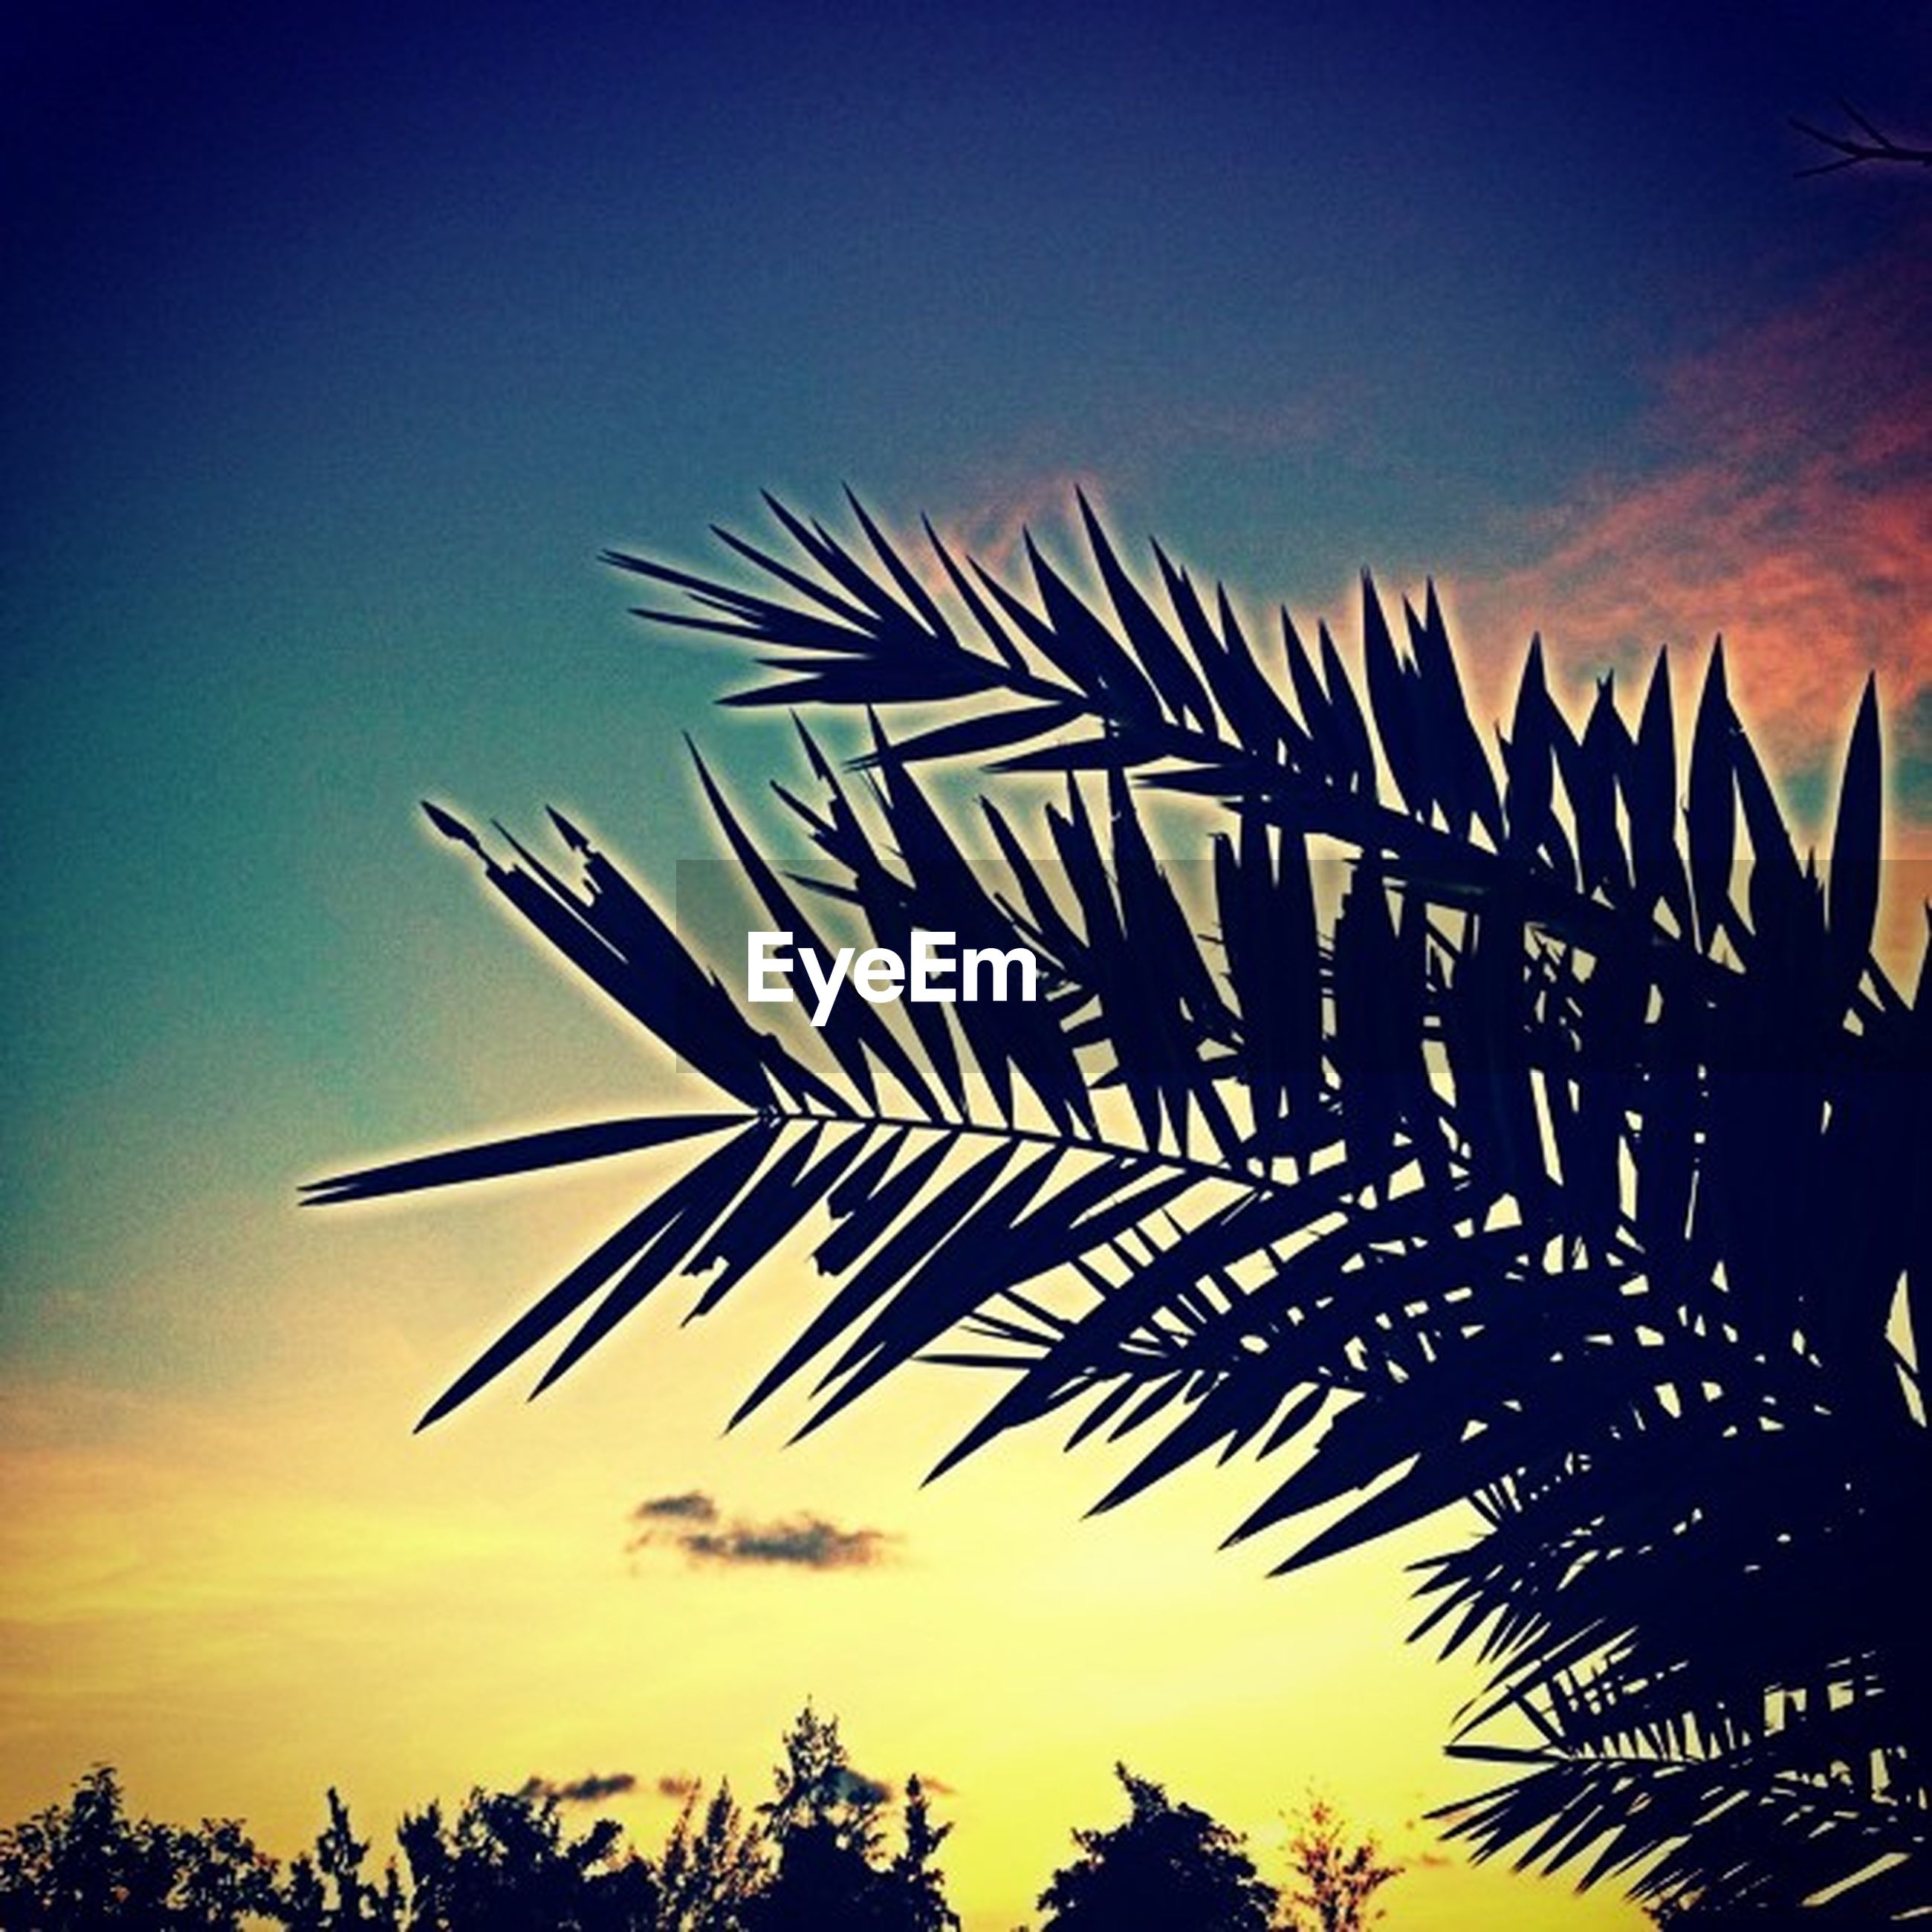 palm tree, low angle view, growth, sky, palm leaf, nature, tranquility, beauty in nature, tree, blue, silhouette, clear sky, leaf, tranquil scene, scenics, outdoors, no people, coconut palm tree, sunset, sunlight